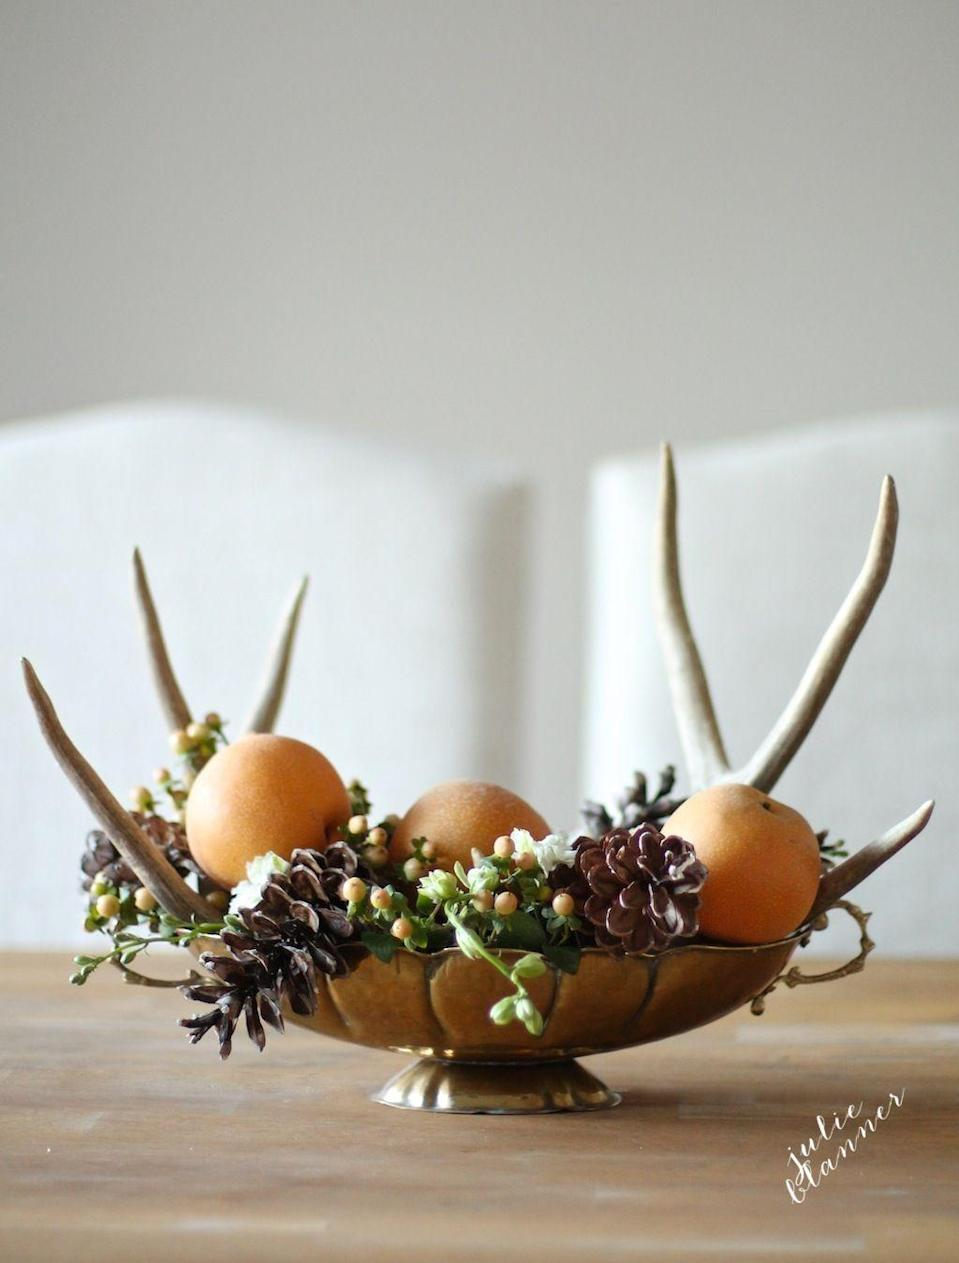 "<p>Most of the components in this centerpiece can be found in your backyard, making it quick to assemble. Pick up faux antlers at the craft store for a final flourish.</p><p><em><a href=""http://julieblanner.com/5-minute-thanksgiving-centerpiece/"" rel=""nofollow noopener"" target=""_blank"" data-ylk=""slk:Get the tutorial at Julie Blanner »"" class=""link rapid-noclick-resp"">Get the tutorial at Julie Blanner »</a></em></p>"